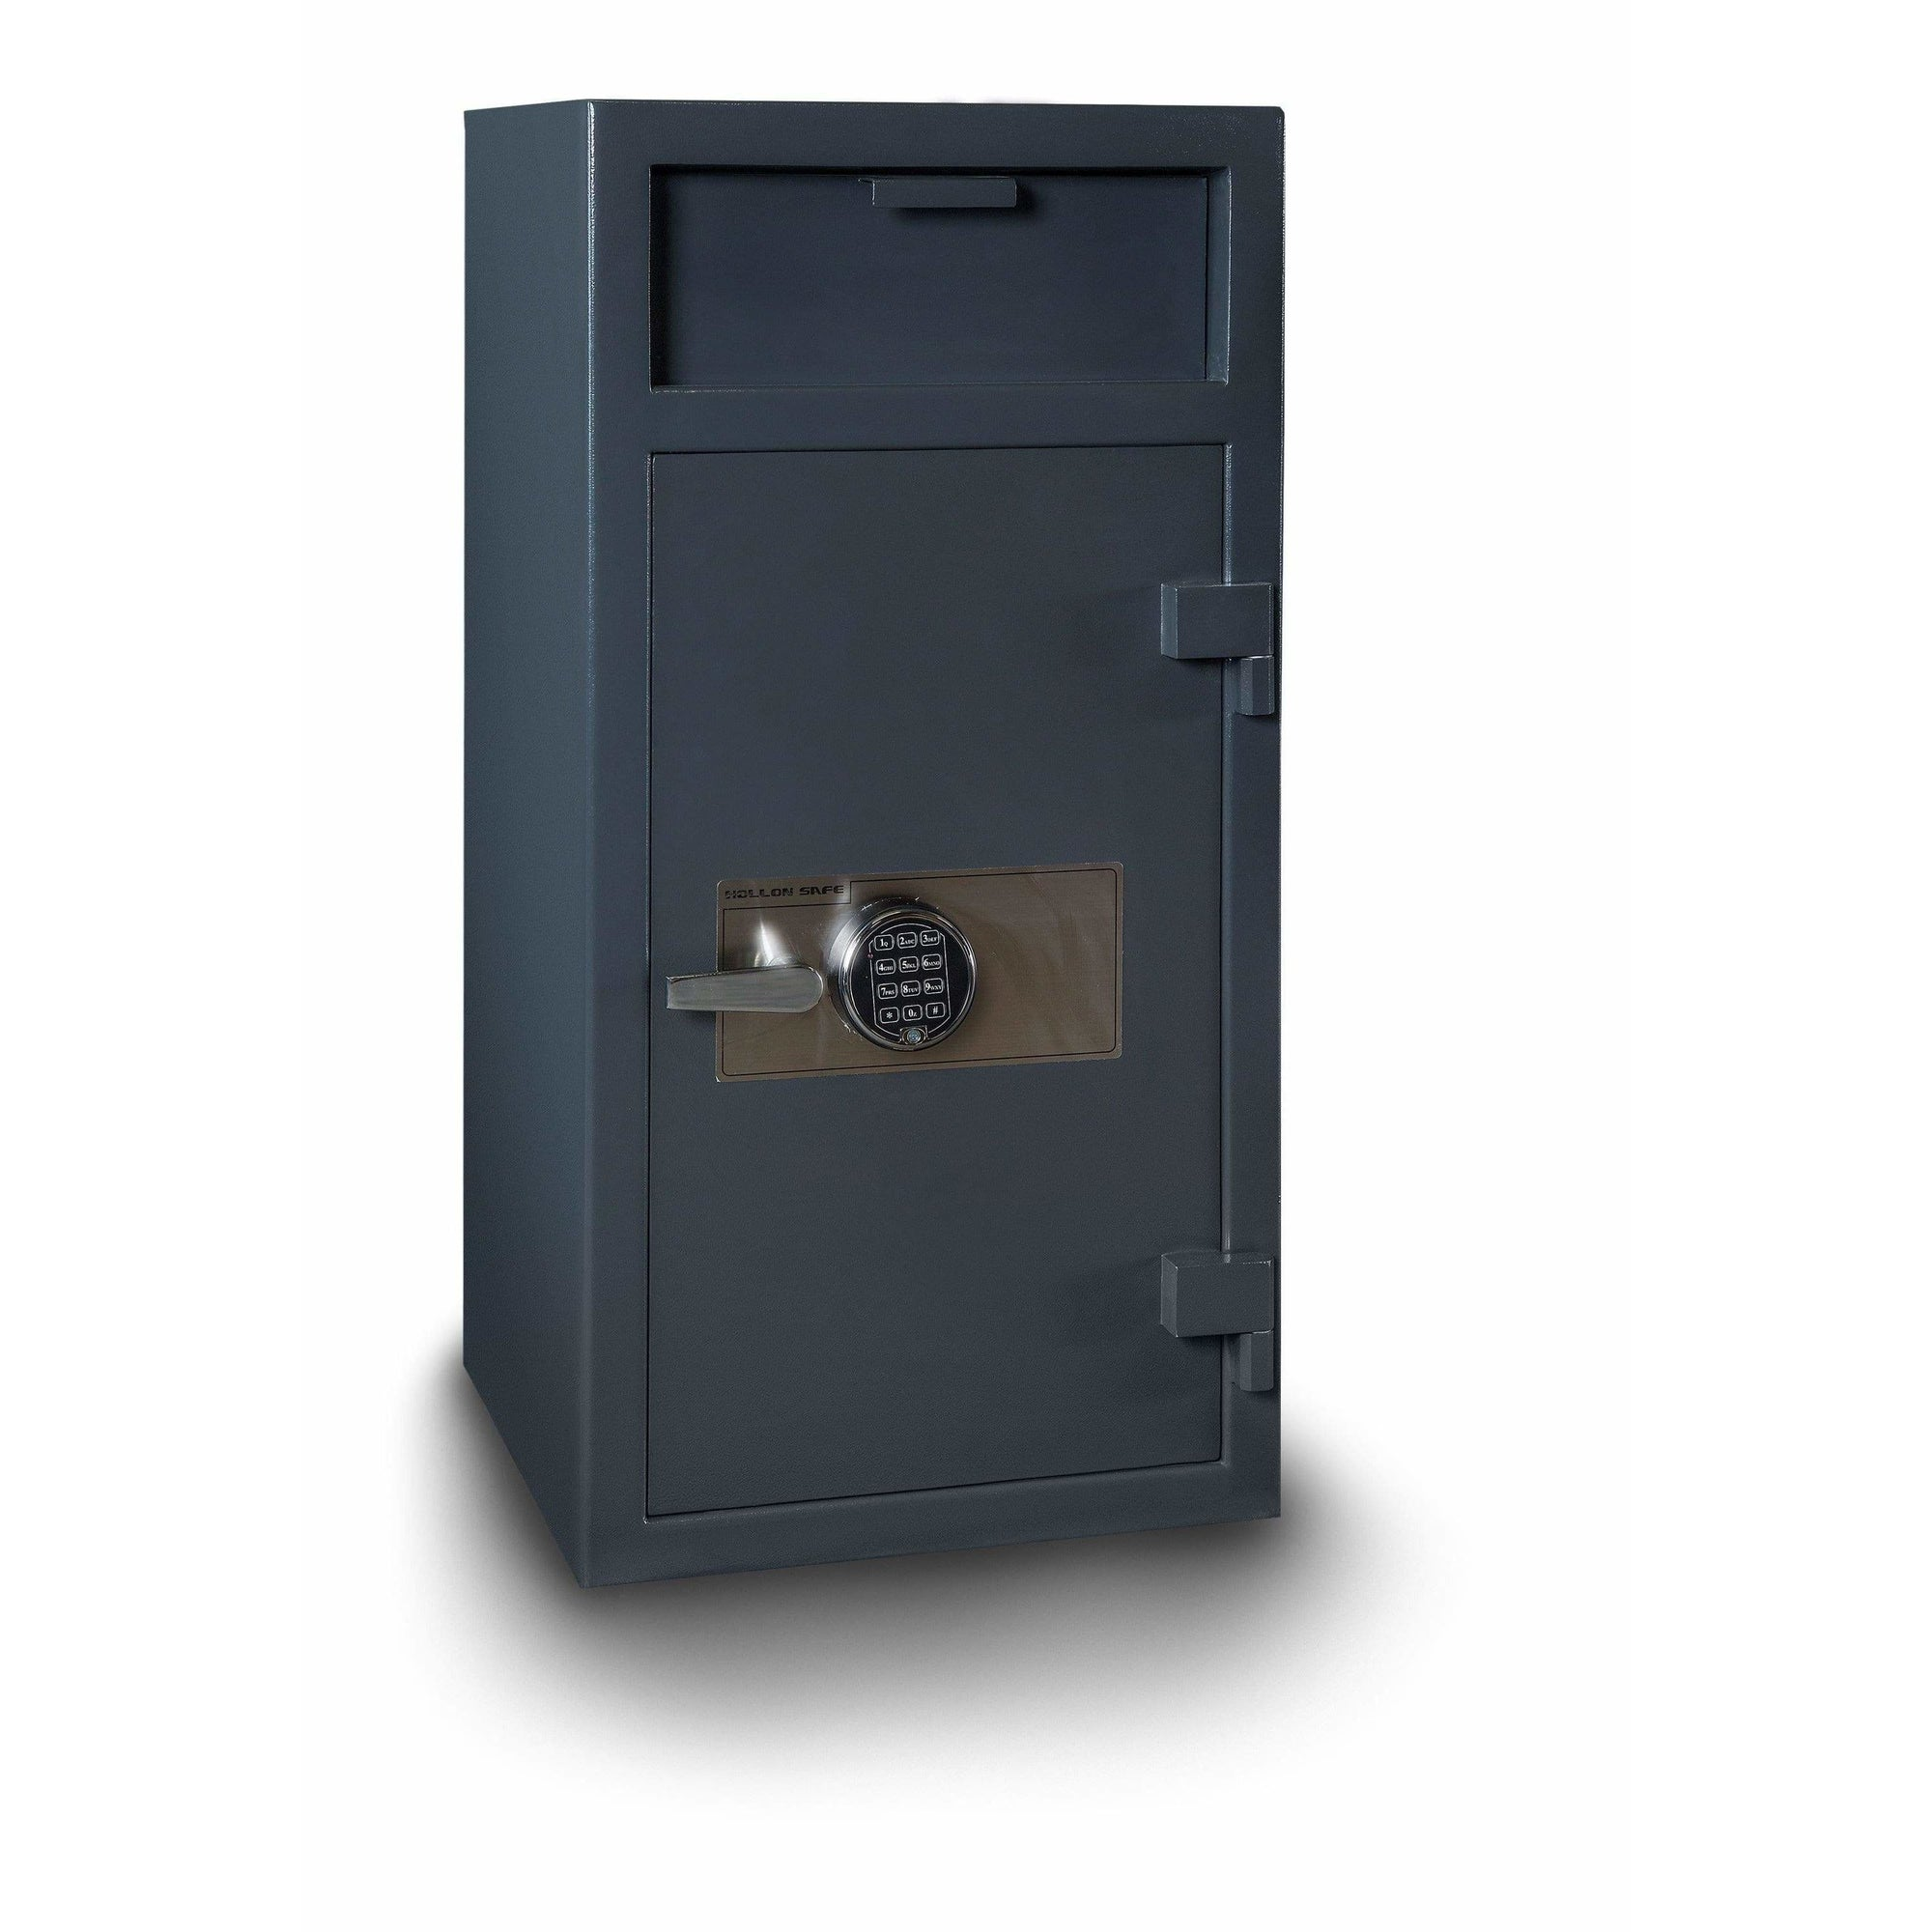 Hollon Safe Deposit Safe Hollon Safe Depository Safe with Inner Locking Compartment FD-4020EILK FD-4020EILK